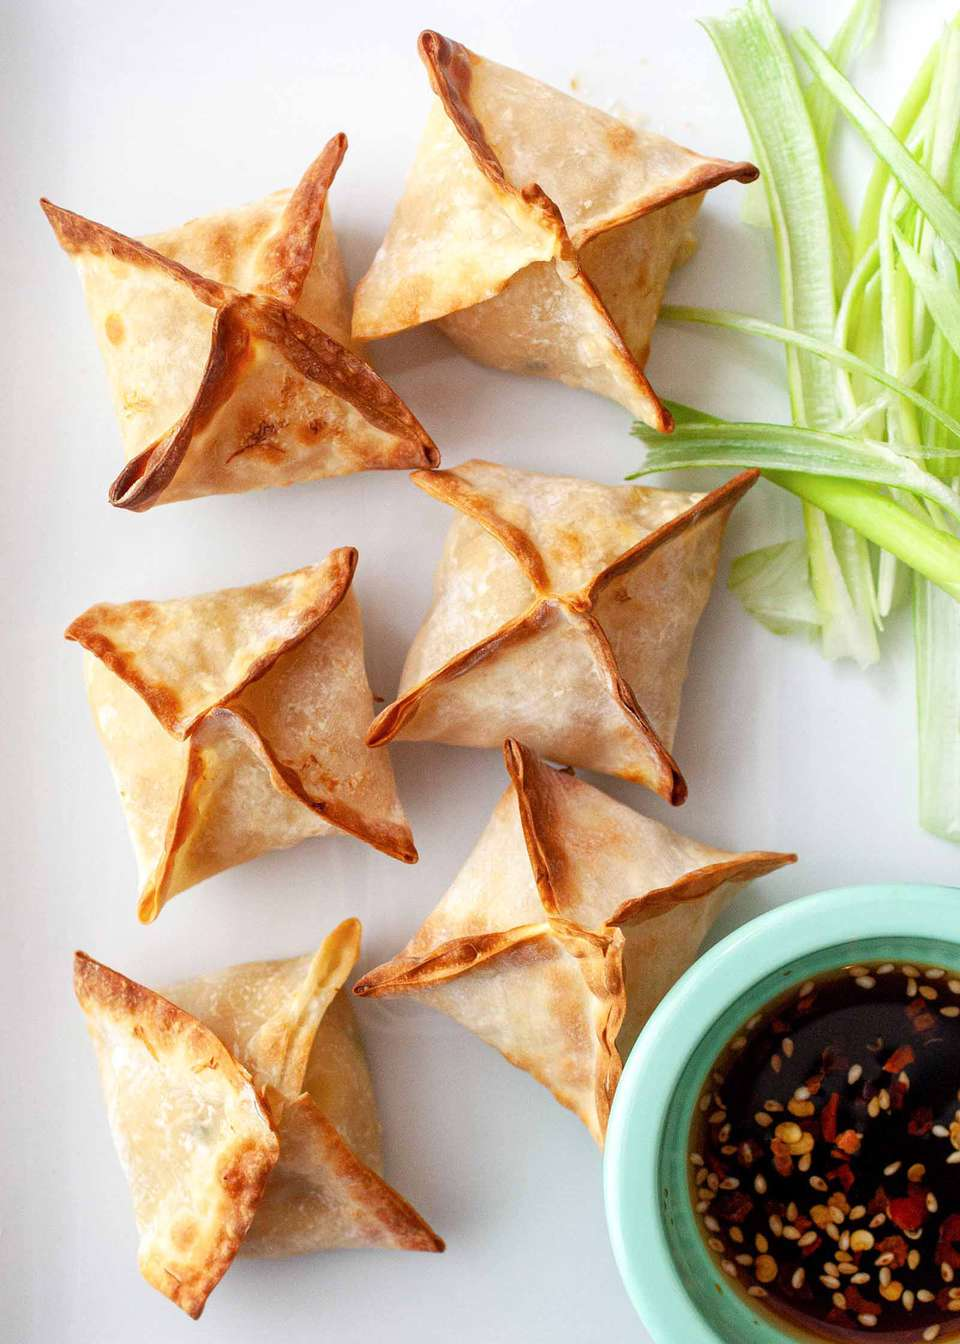 Crispy fried homemade wontons made in the air fryer